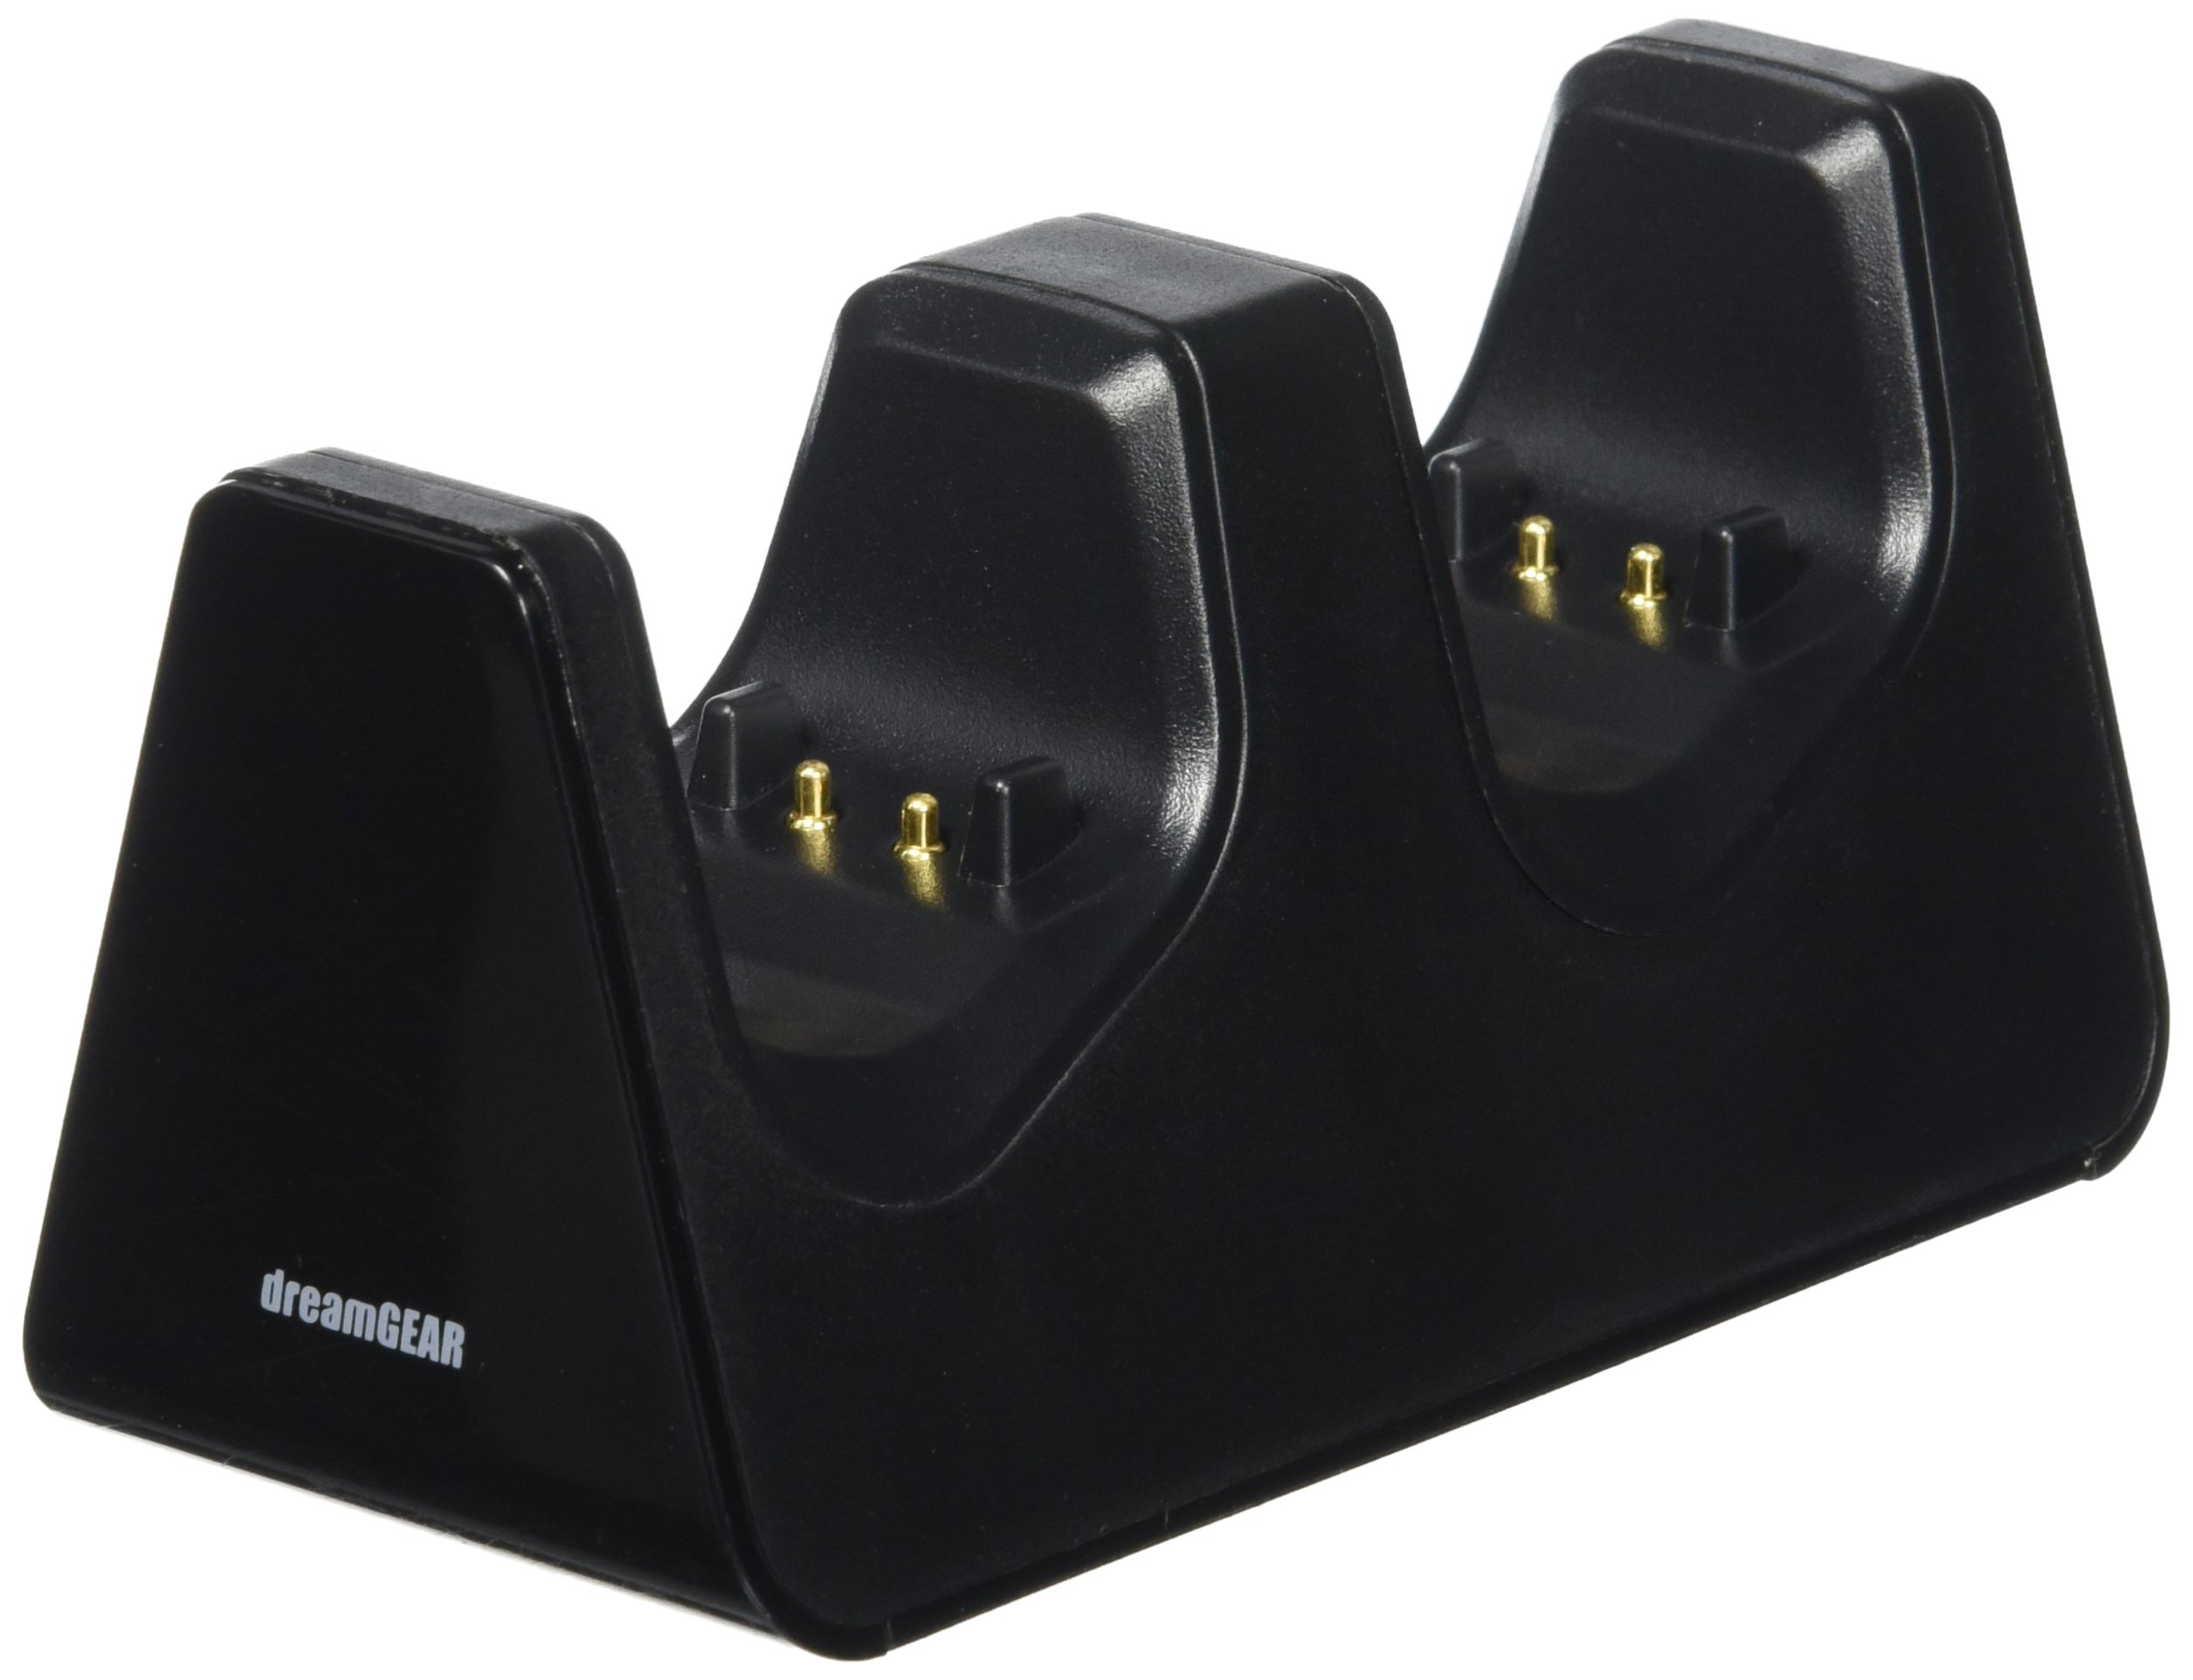 dreamGEAR Dual Charge Station for Xbox One Controllers - Rechargeable Batteries Included-Simultaneous Charging